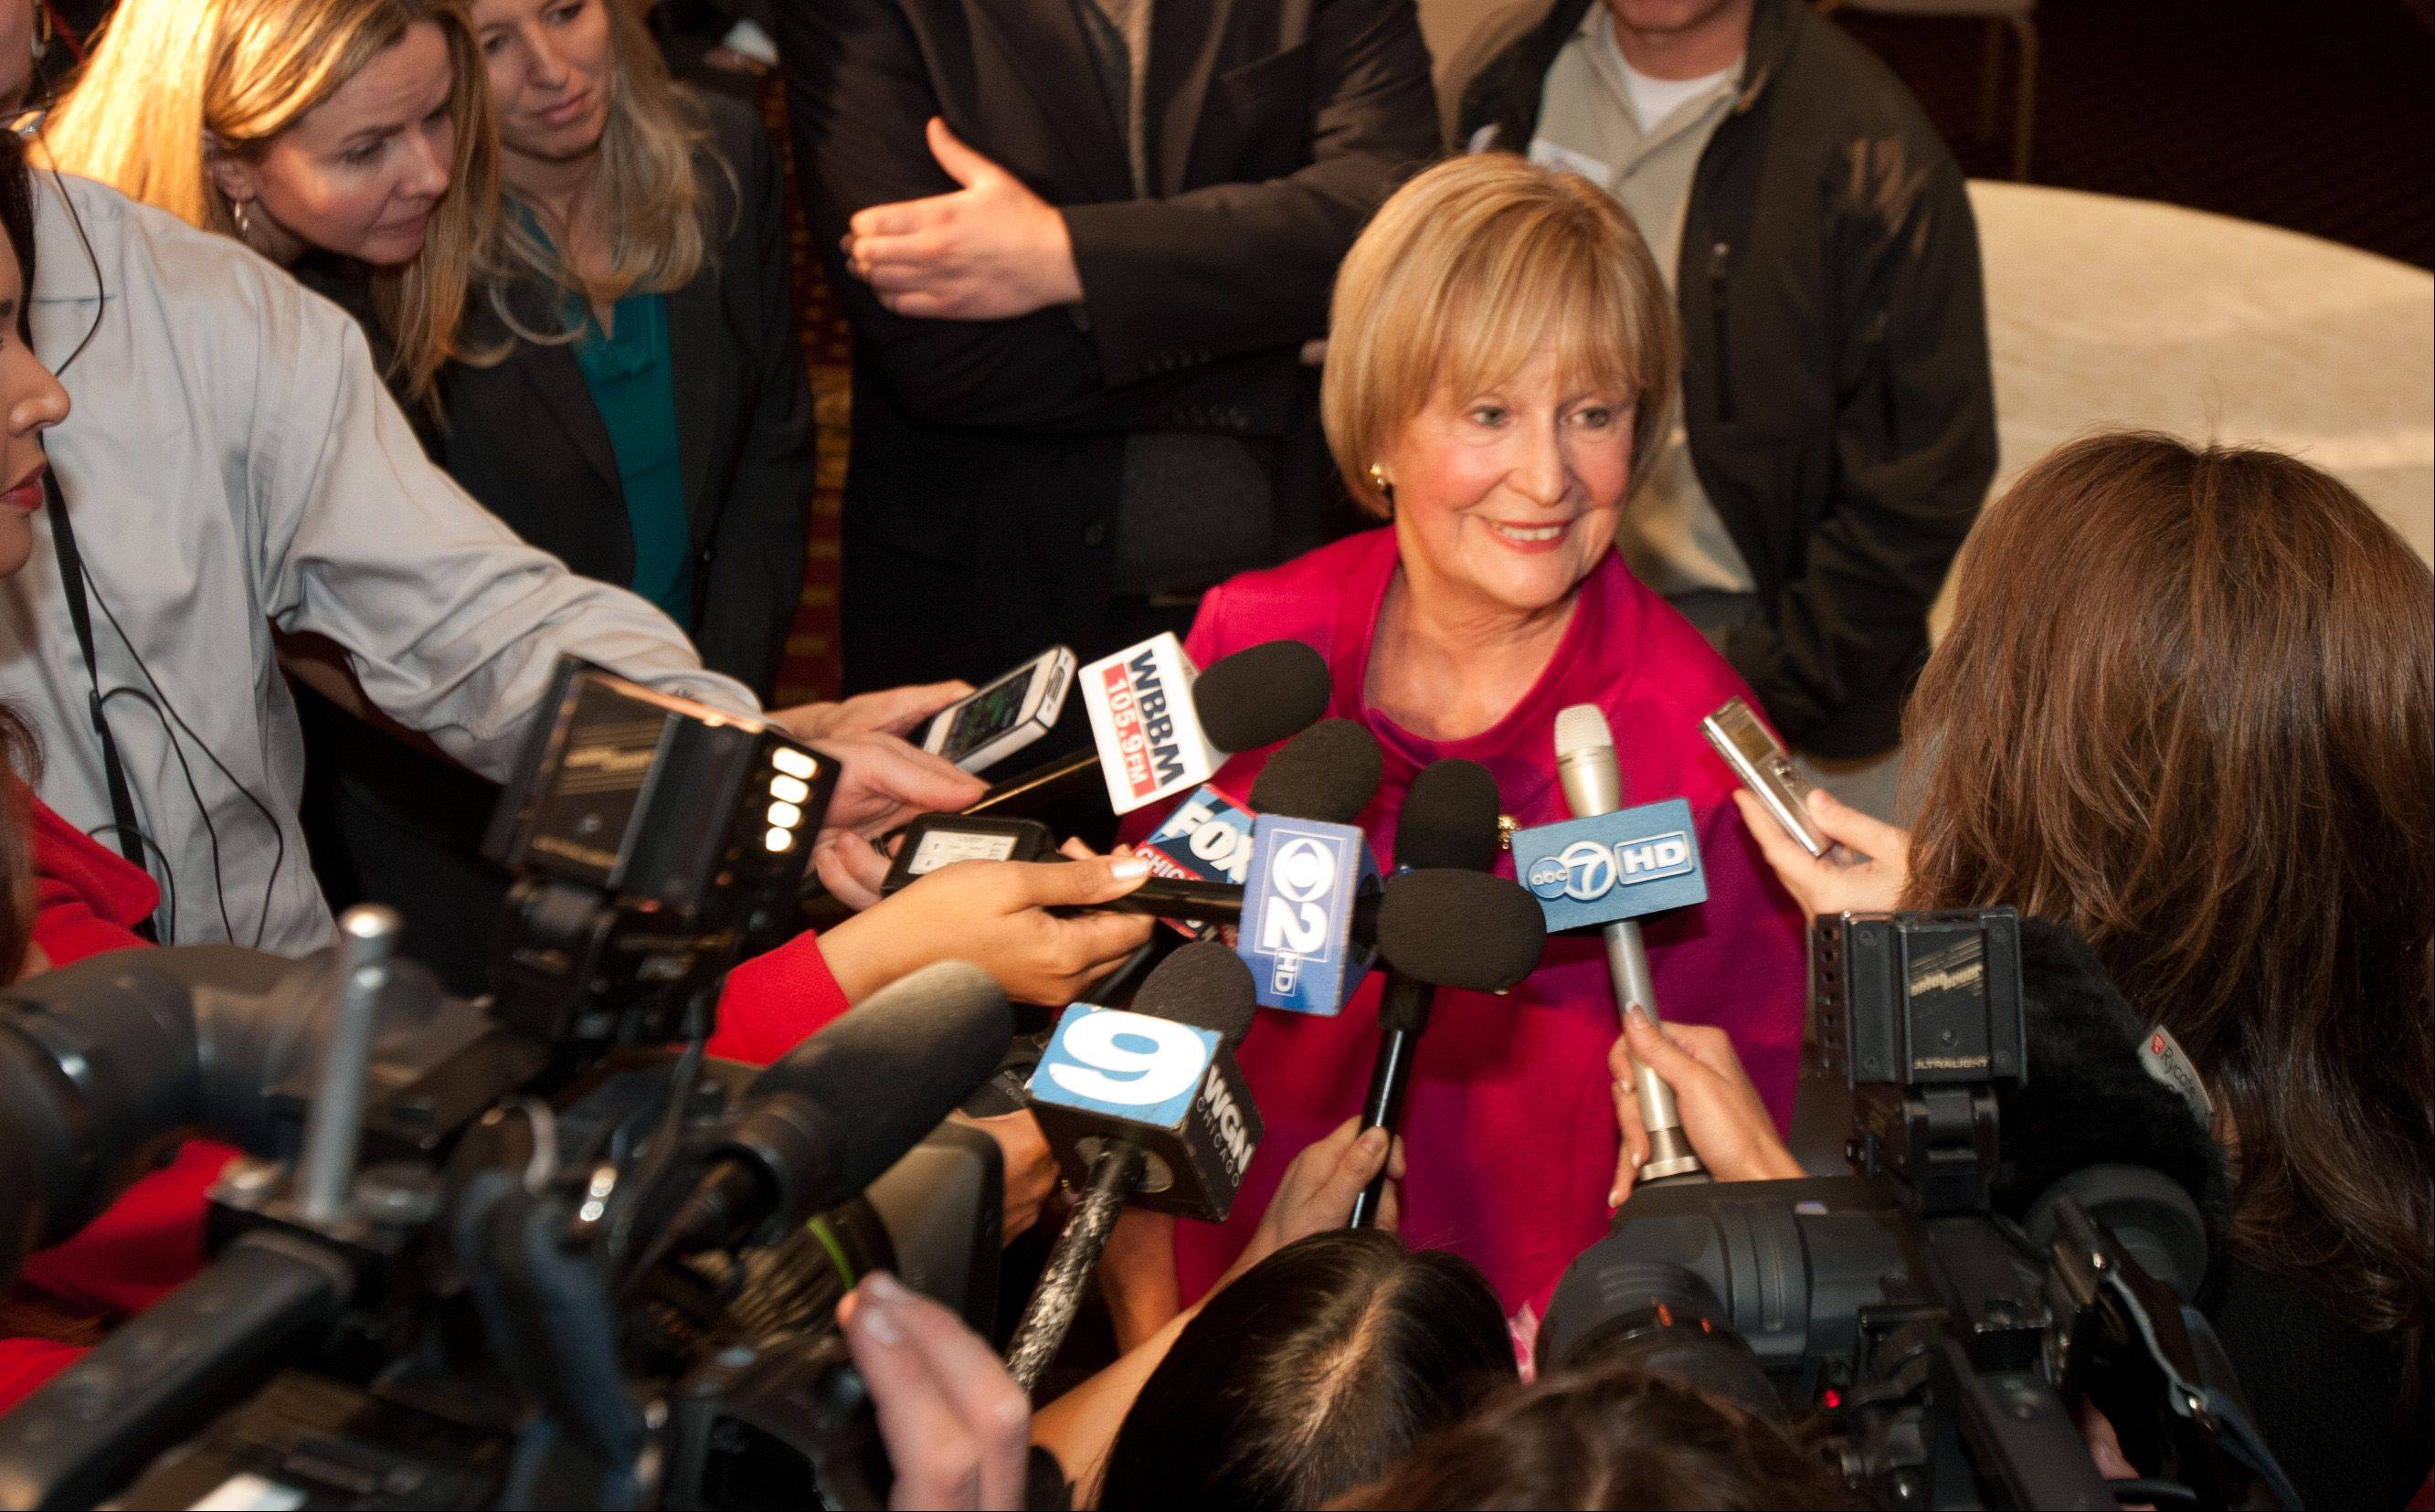 U.S. Rep. Judy Biggert talks to the media after conceding her 11th Congressional district race to Bill Foster.